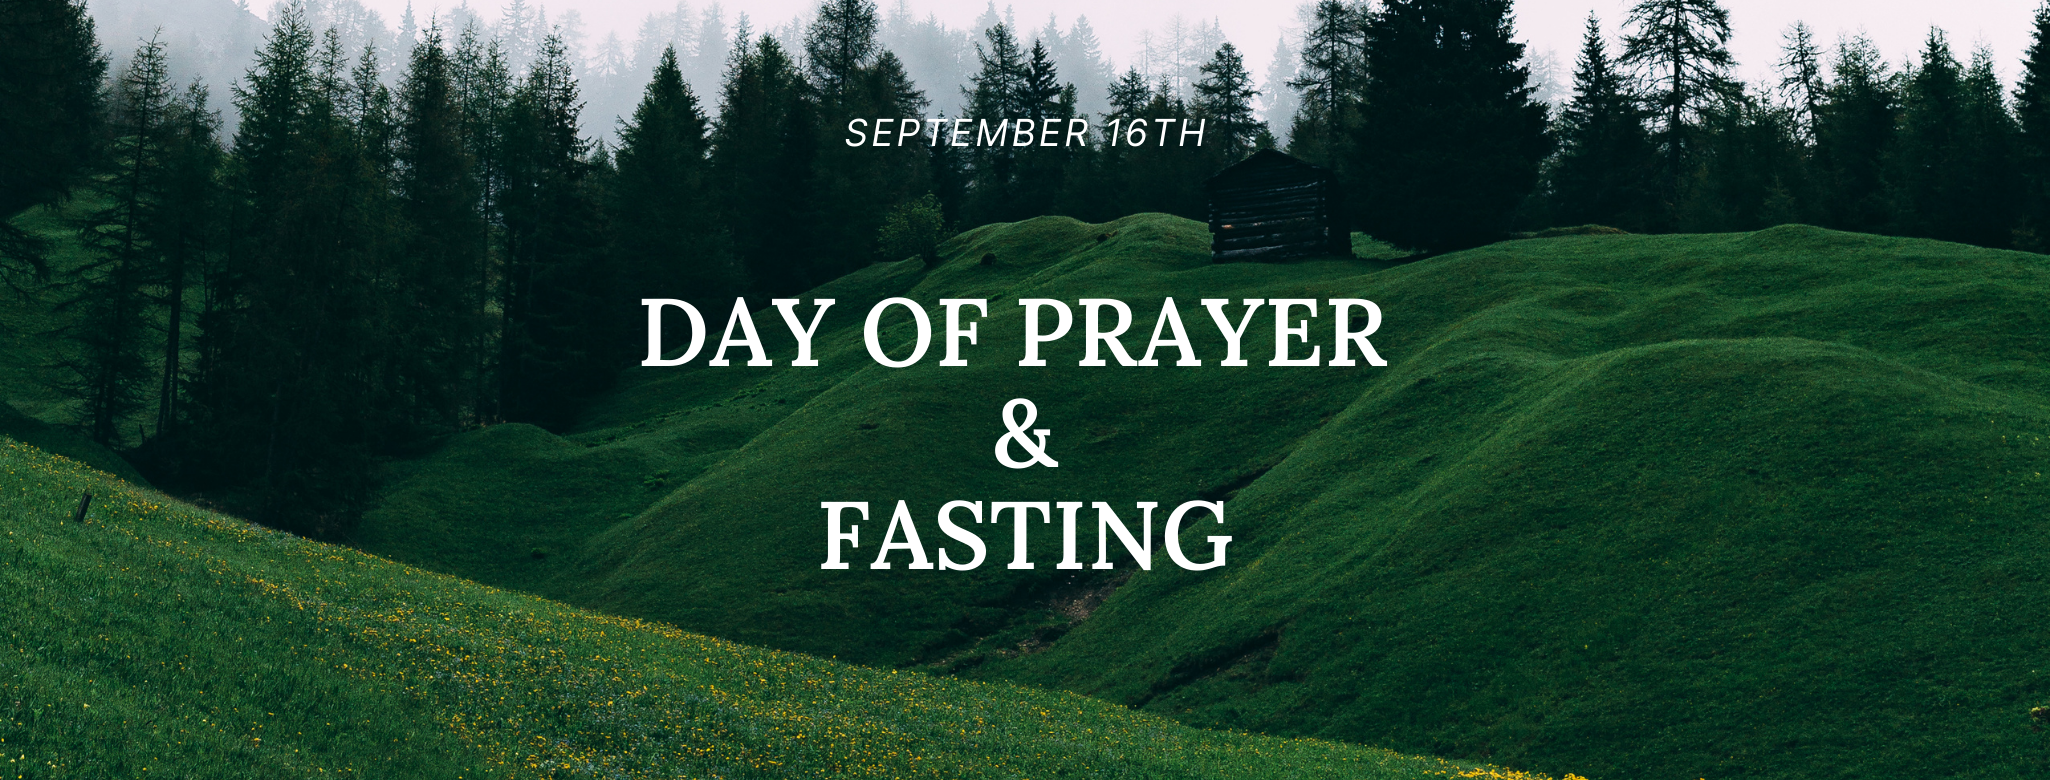 Copy of Copy of Day of prayer & fasting-2 image